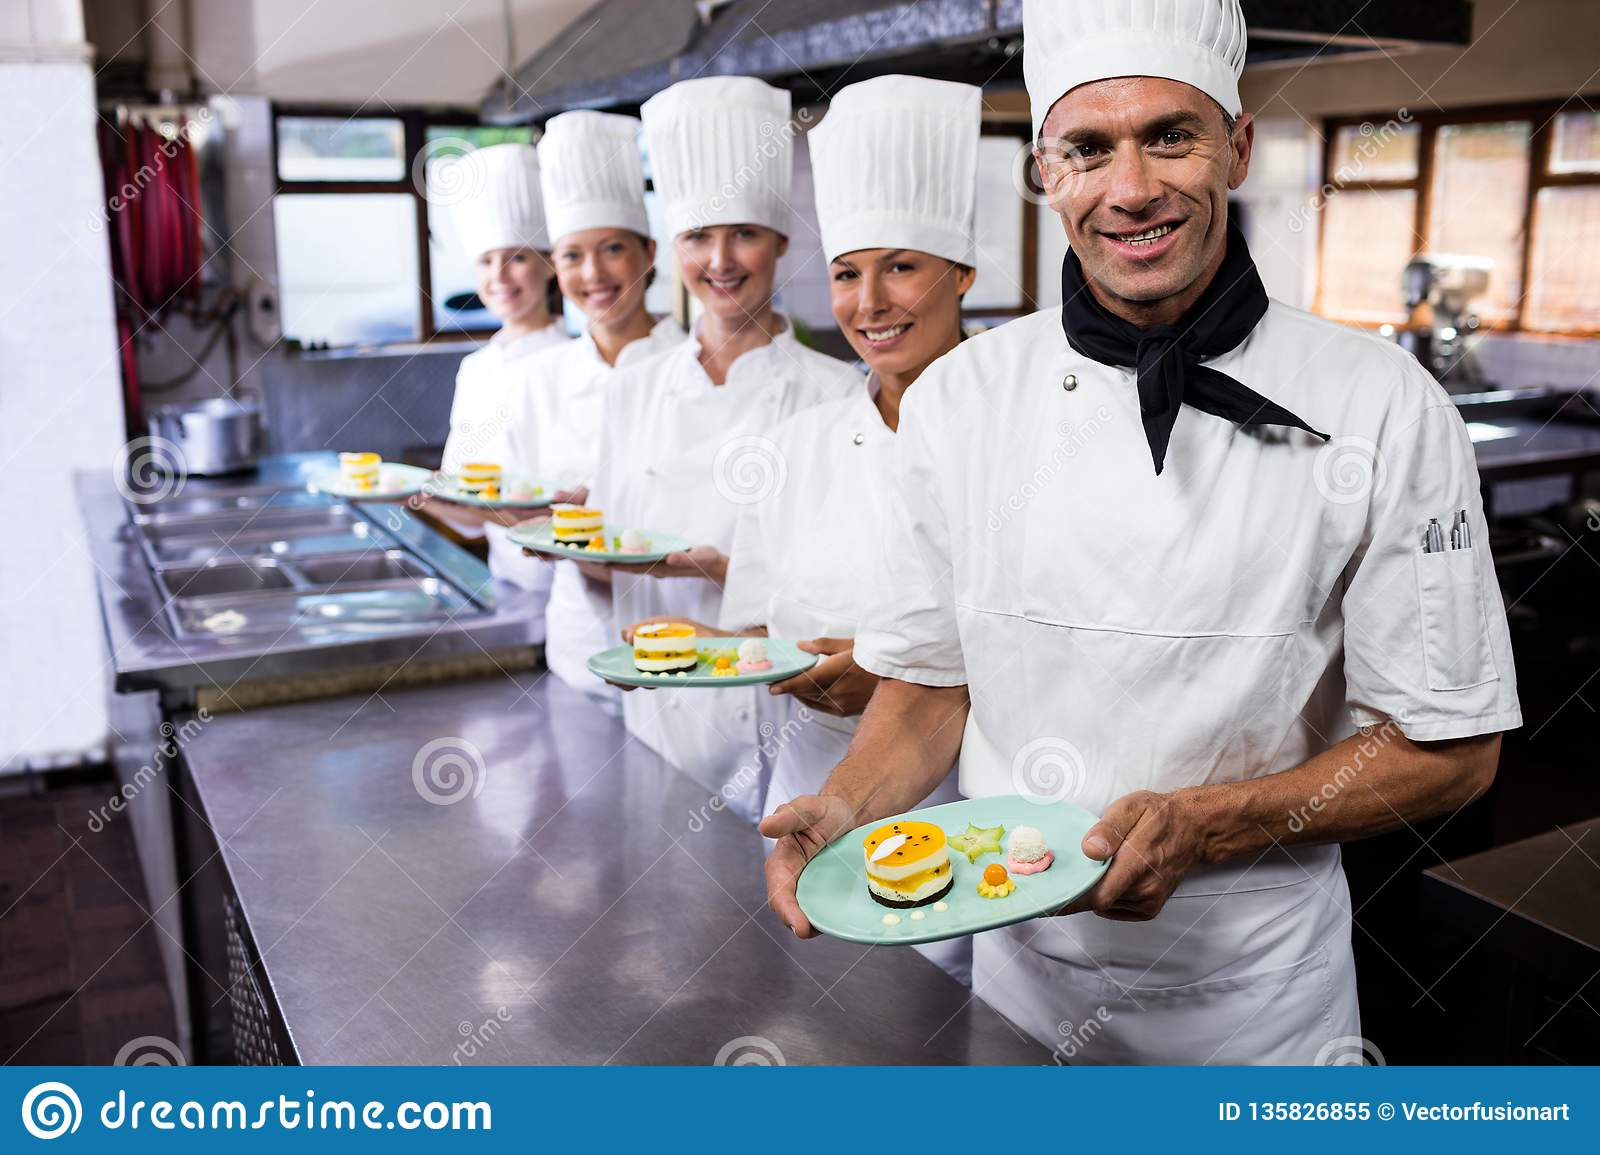 Group of chefs holding plate of delecious desserts in kitchen